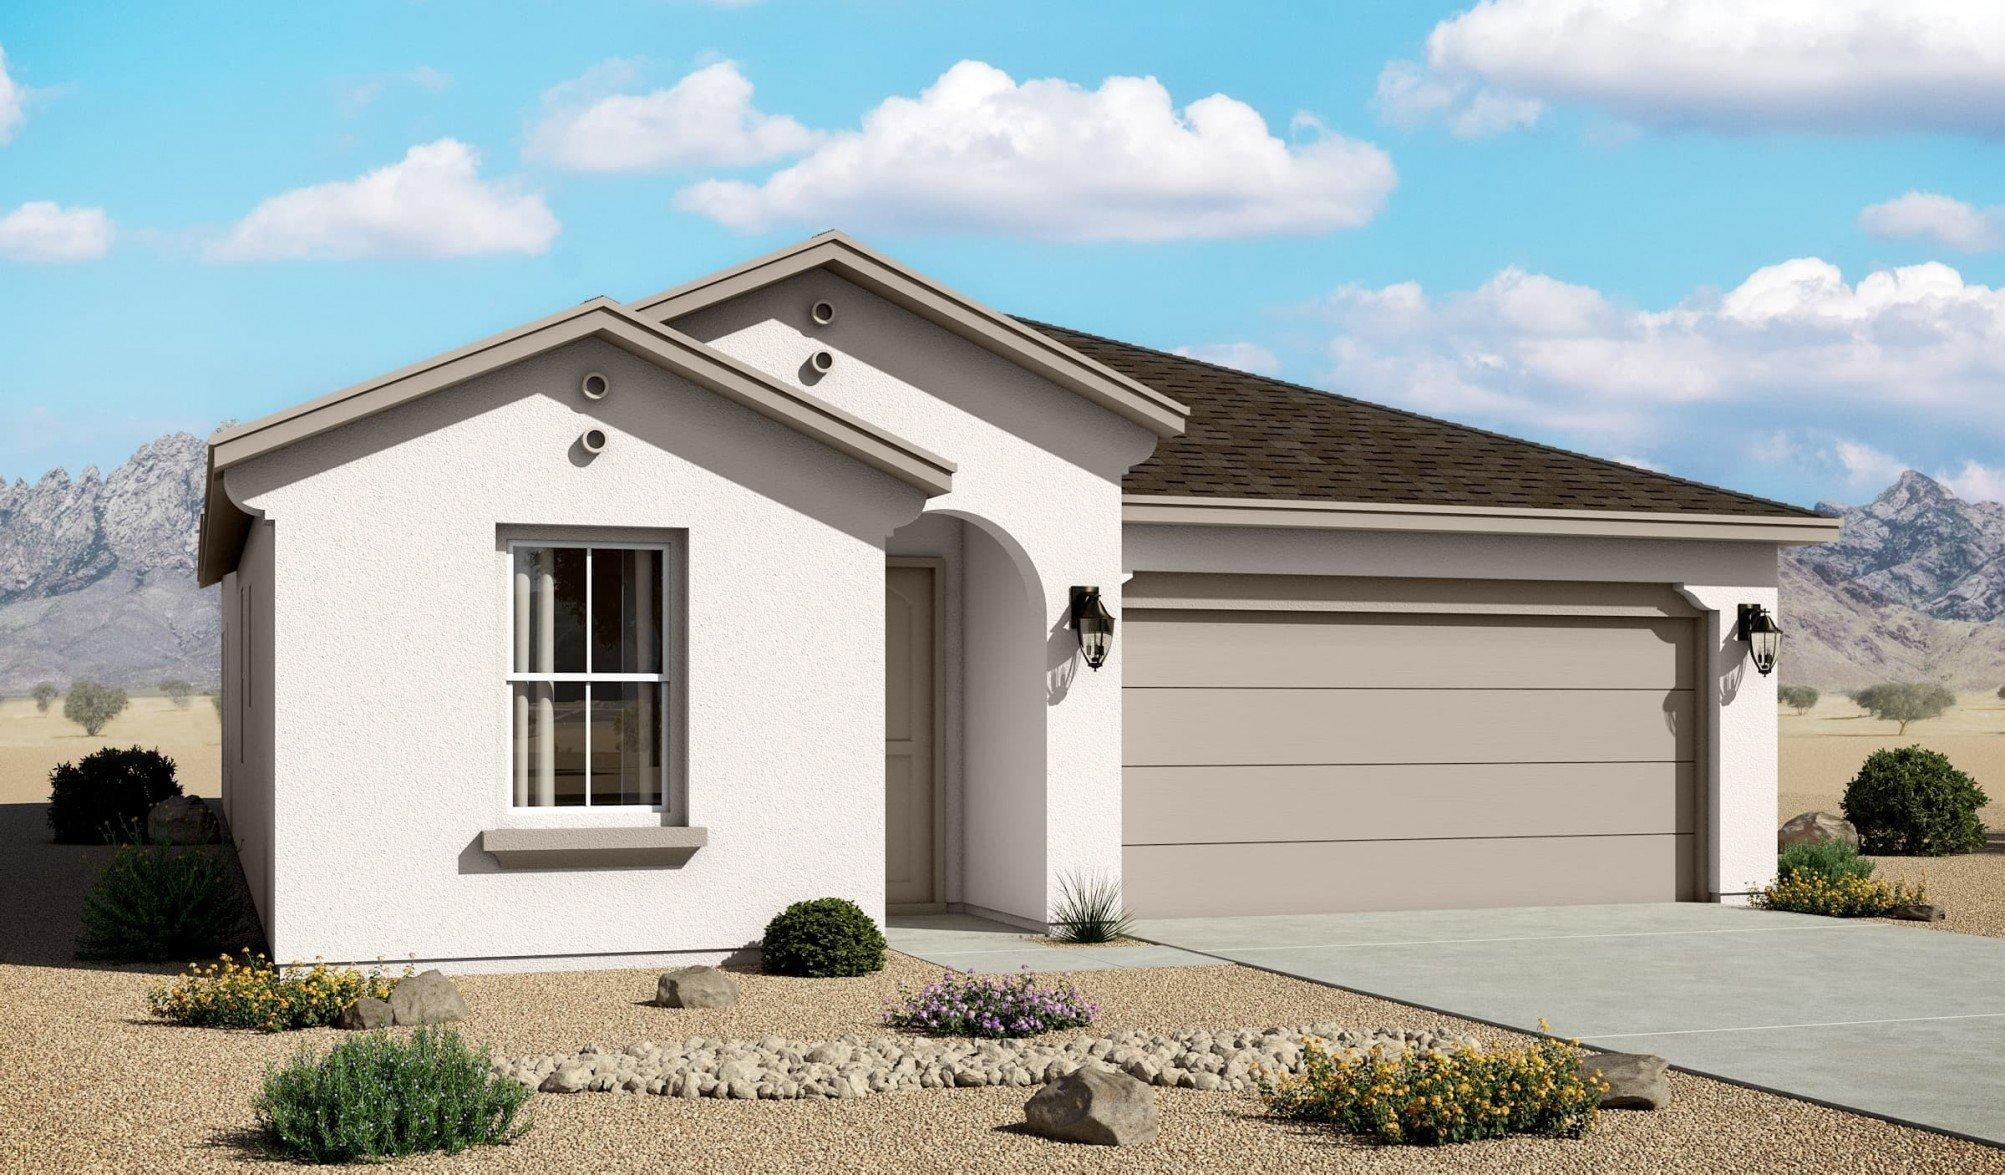 Estimated Completion January 2021. Beautiful 1907 sq ft Hakes Brothers 4 bedroom home. Features great open gourmet kitchen with beautiful stainless steel appliances. The home feature high ceiling and 8 foot doors. So many features to  list, you must see in person!